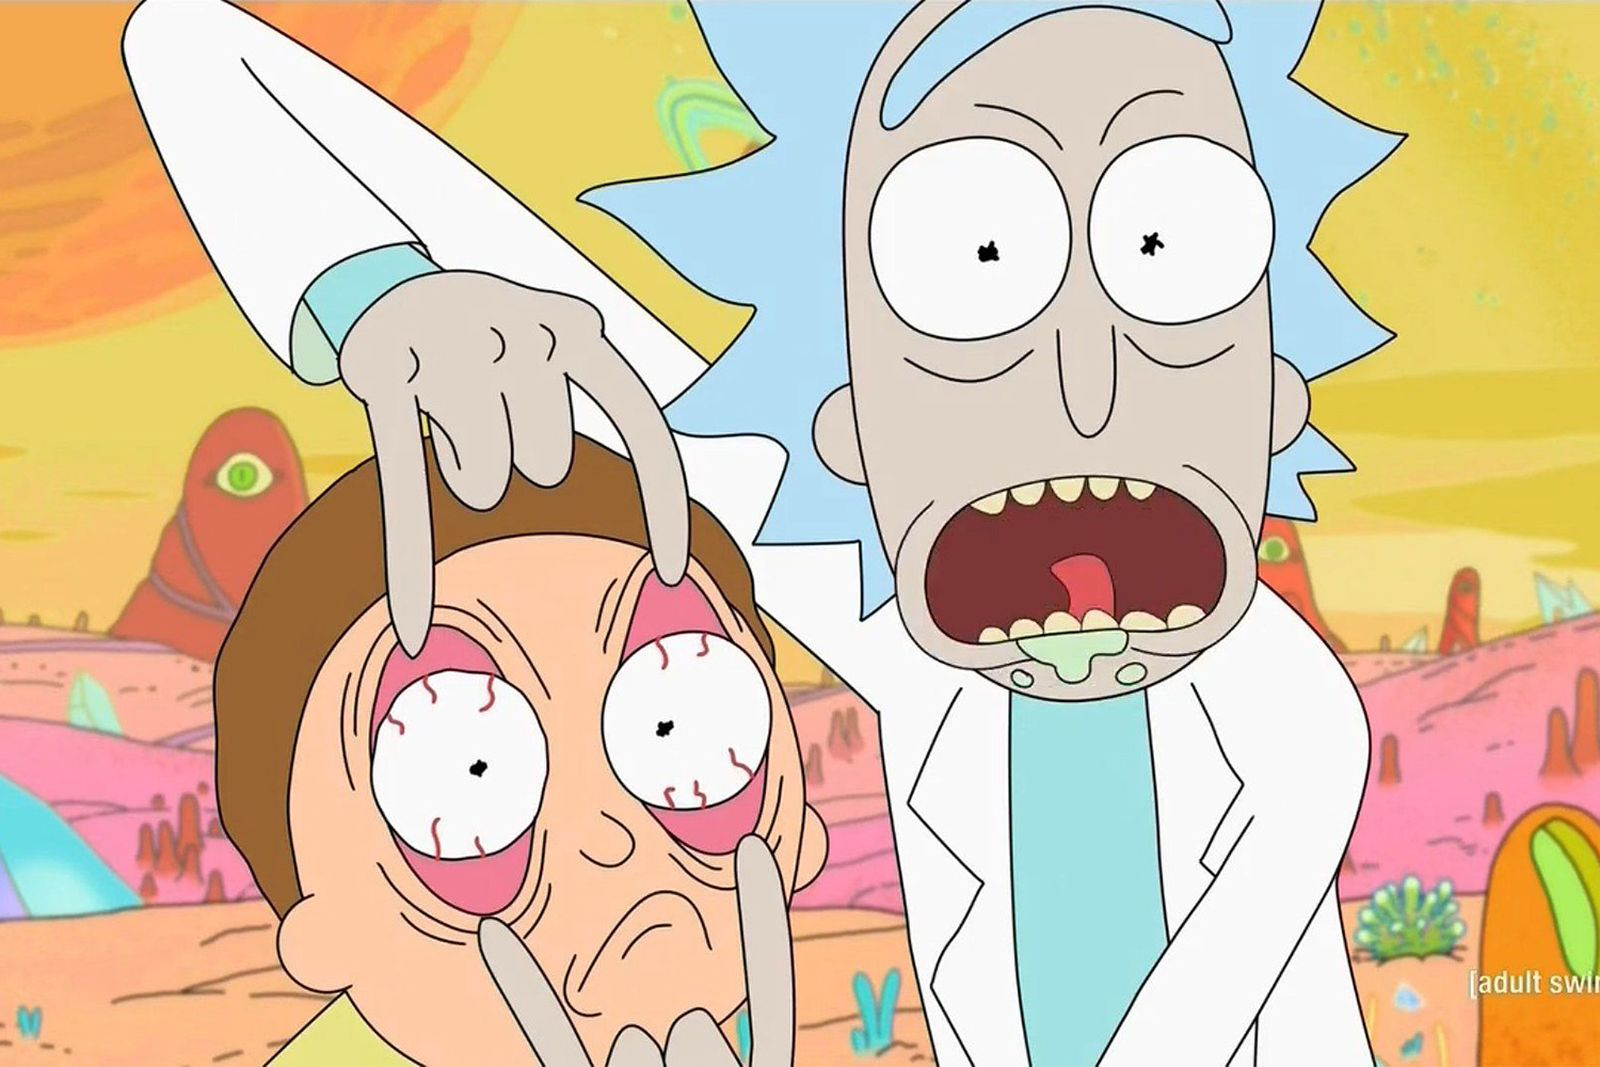 rick-and-morty-70-episodes-confirmed-001